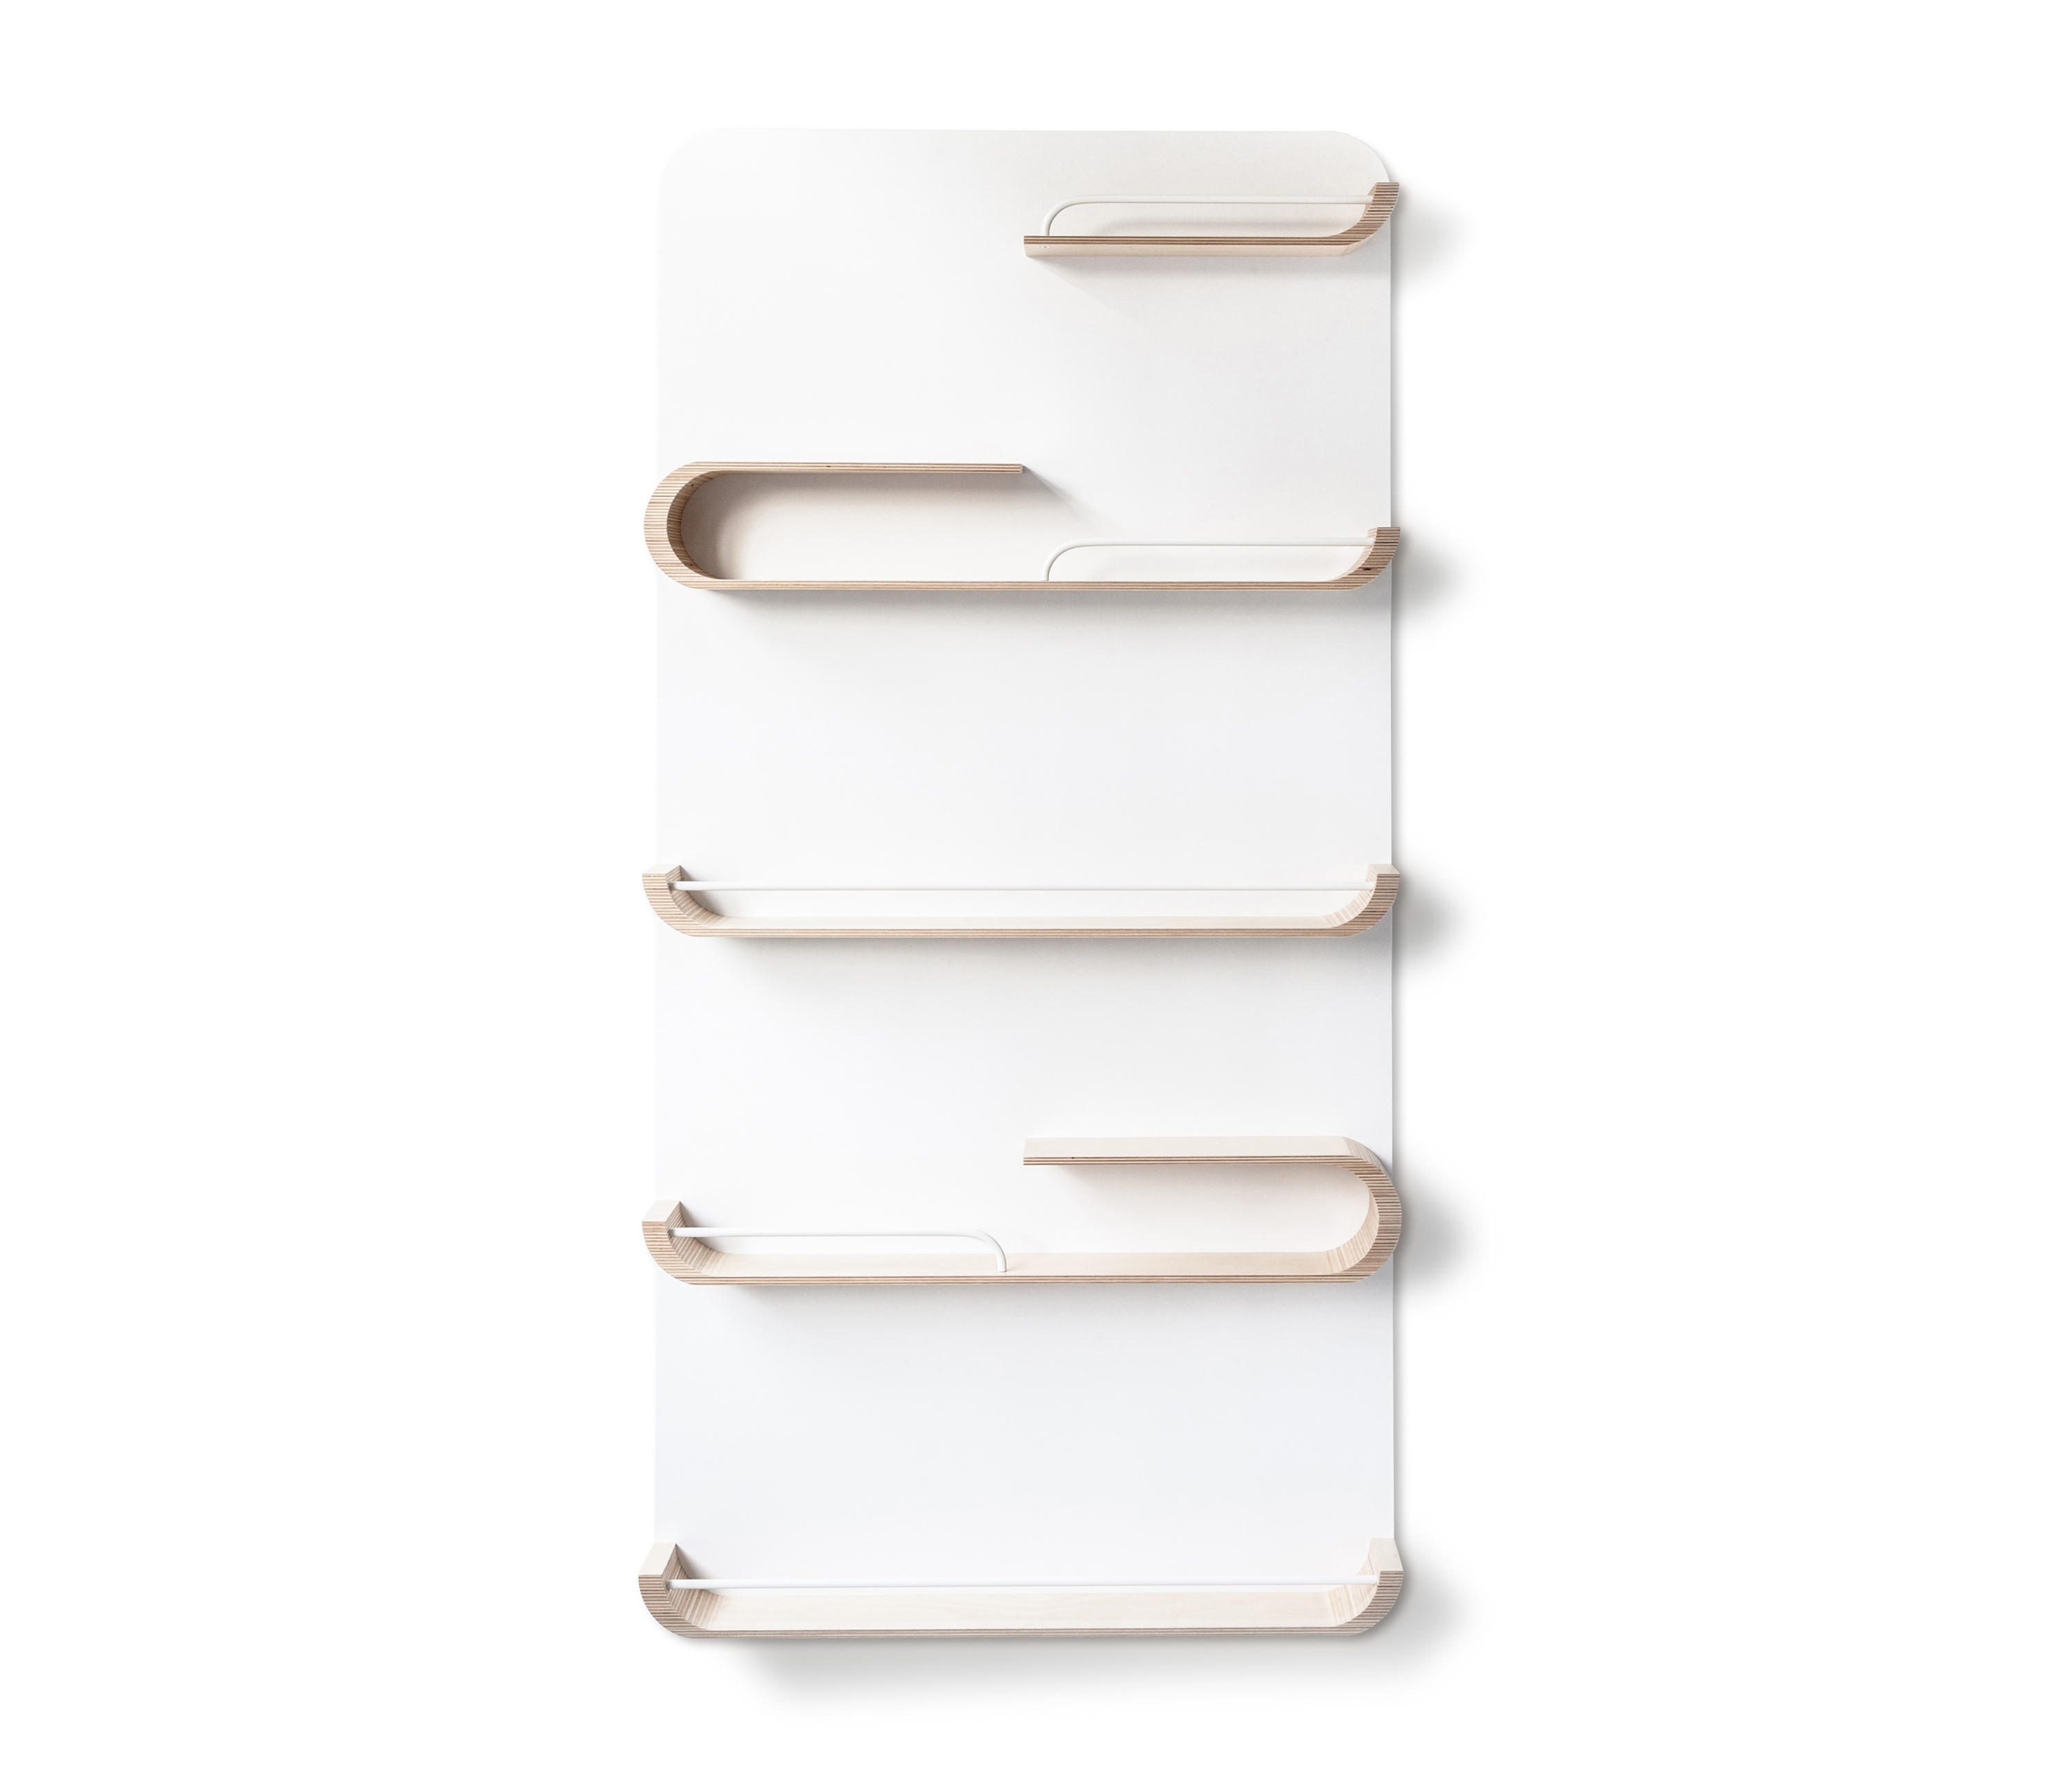 Metal Shelving Xl Shelf Natural White Metal Shelving From Rafa Kids Architonic